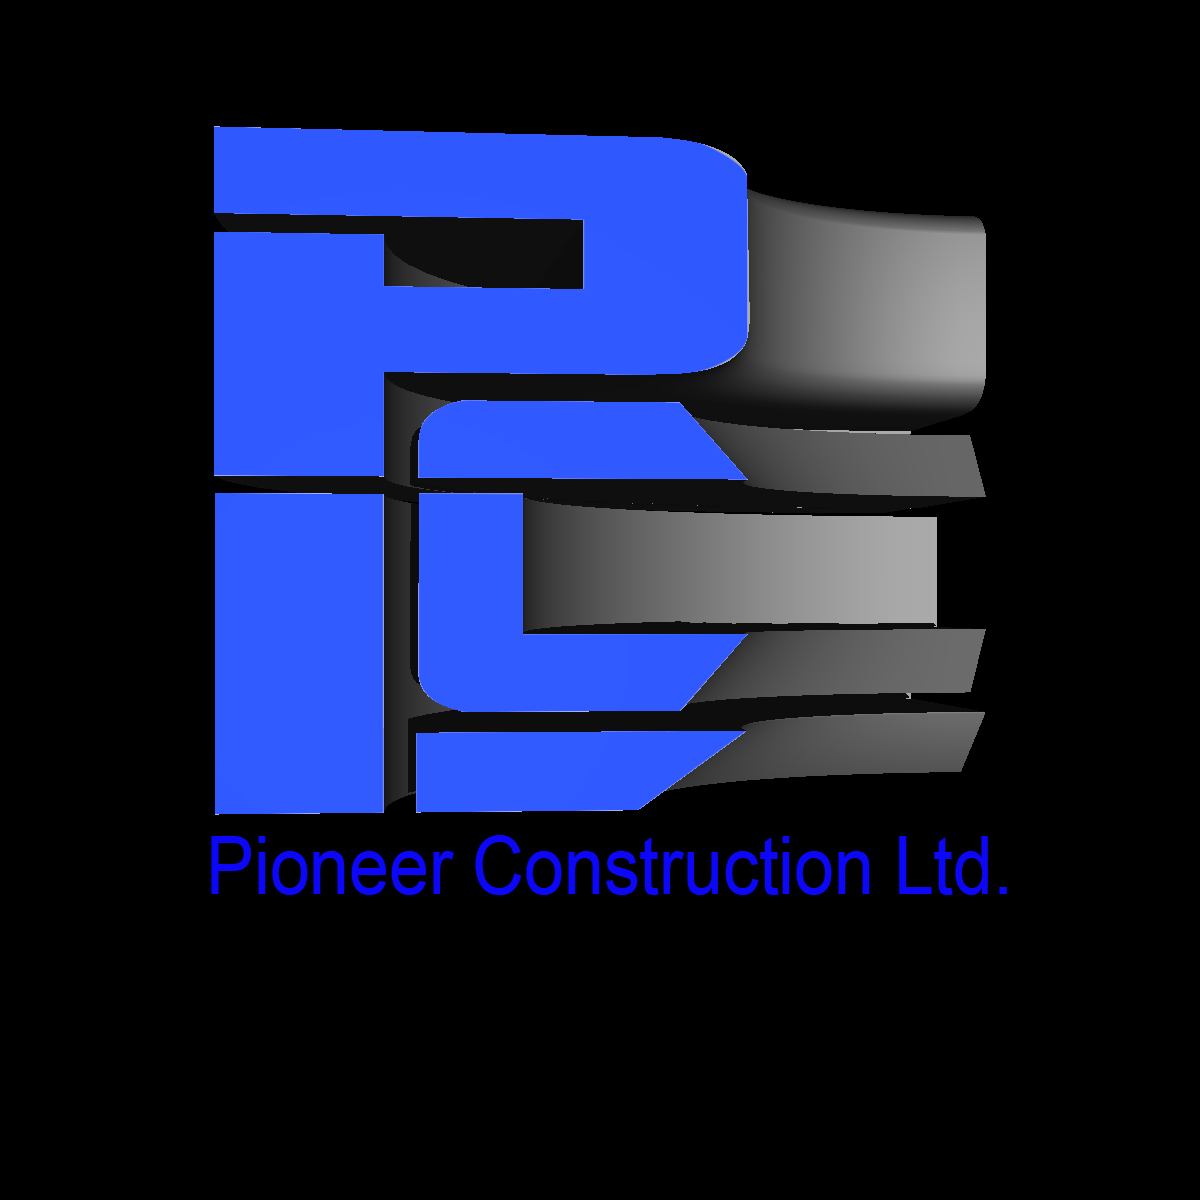 Logo Design by Private User - Entry No. 69 in the Logo Design Contest Imaginative Logo Design for  Pioneer Construction Ltd.